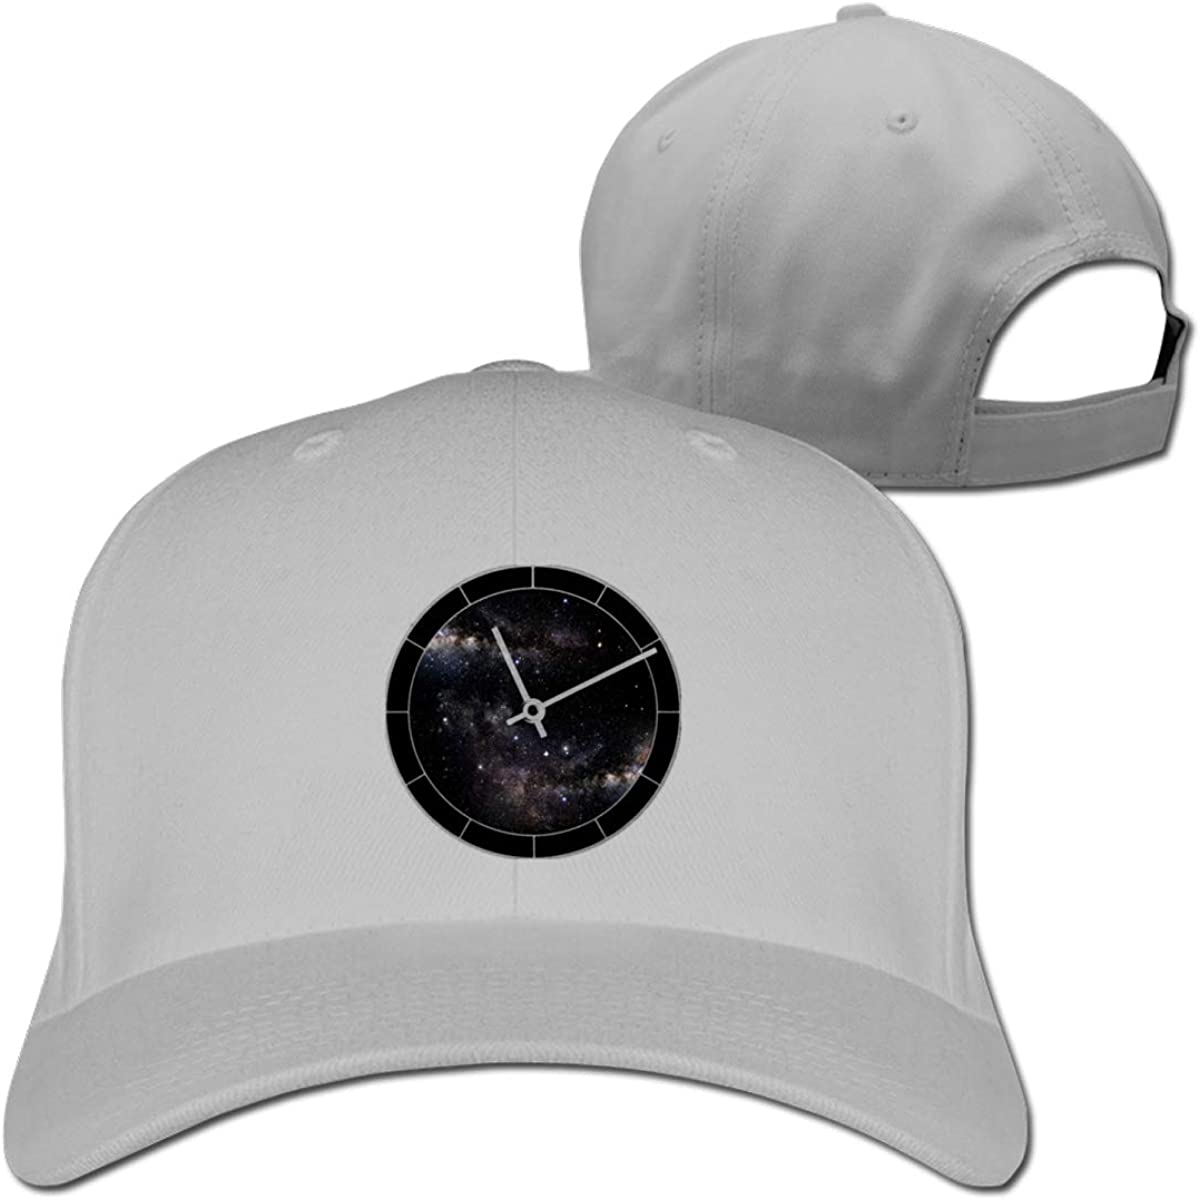 Time and Space Fashion Adjustable Cotton Baseball Caps Trucker Driver Hat Outdoor Cap Gray